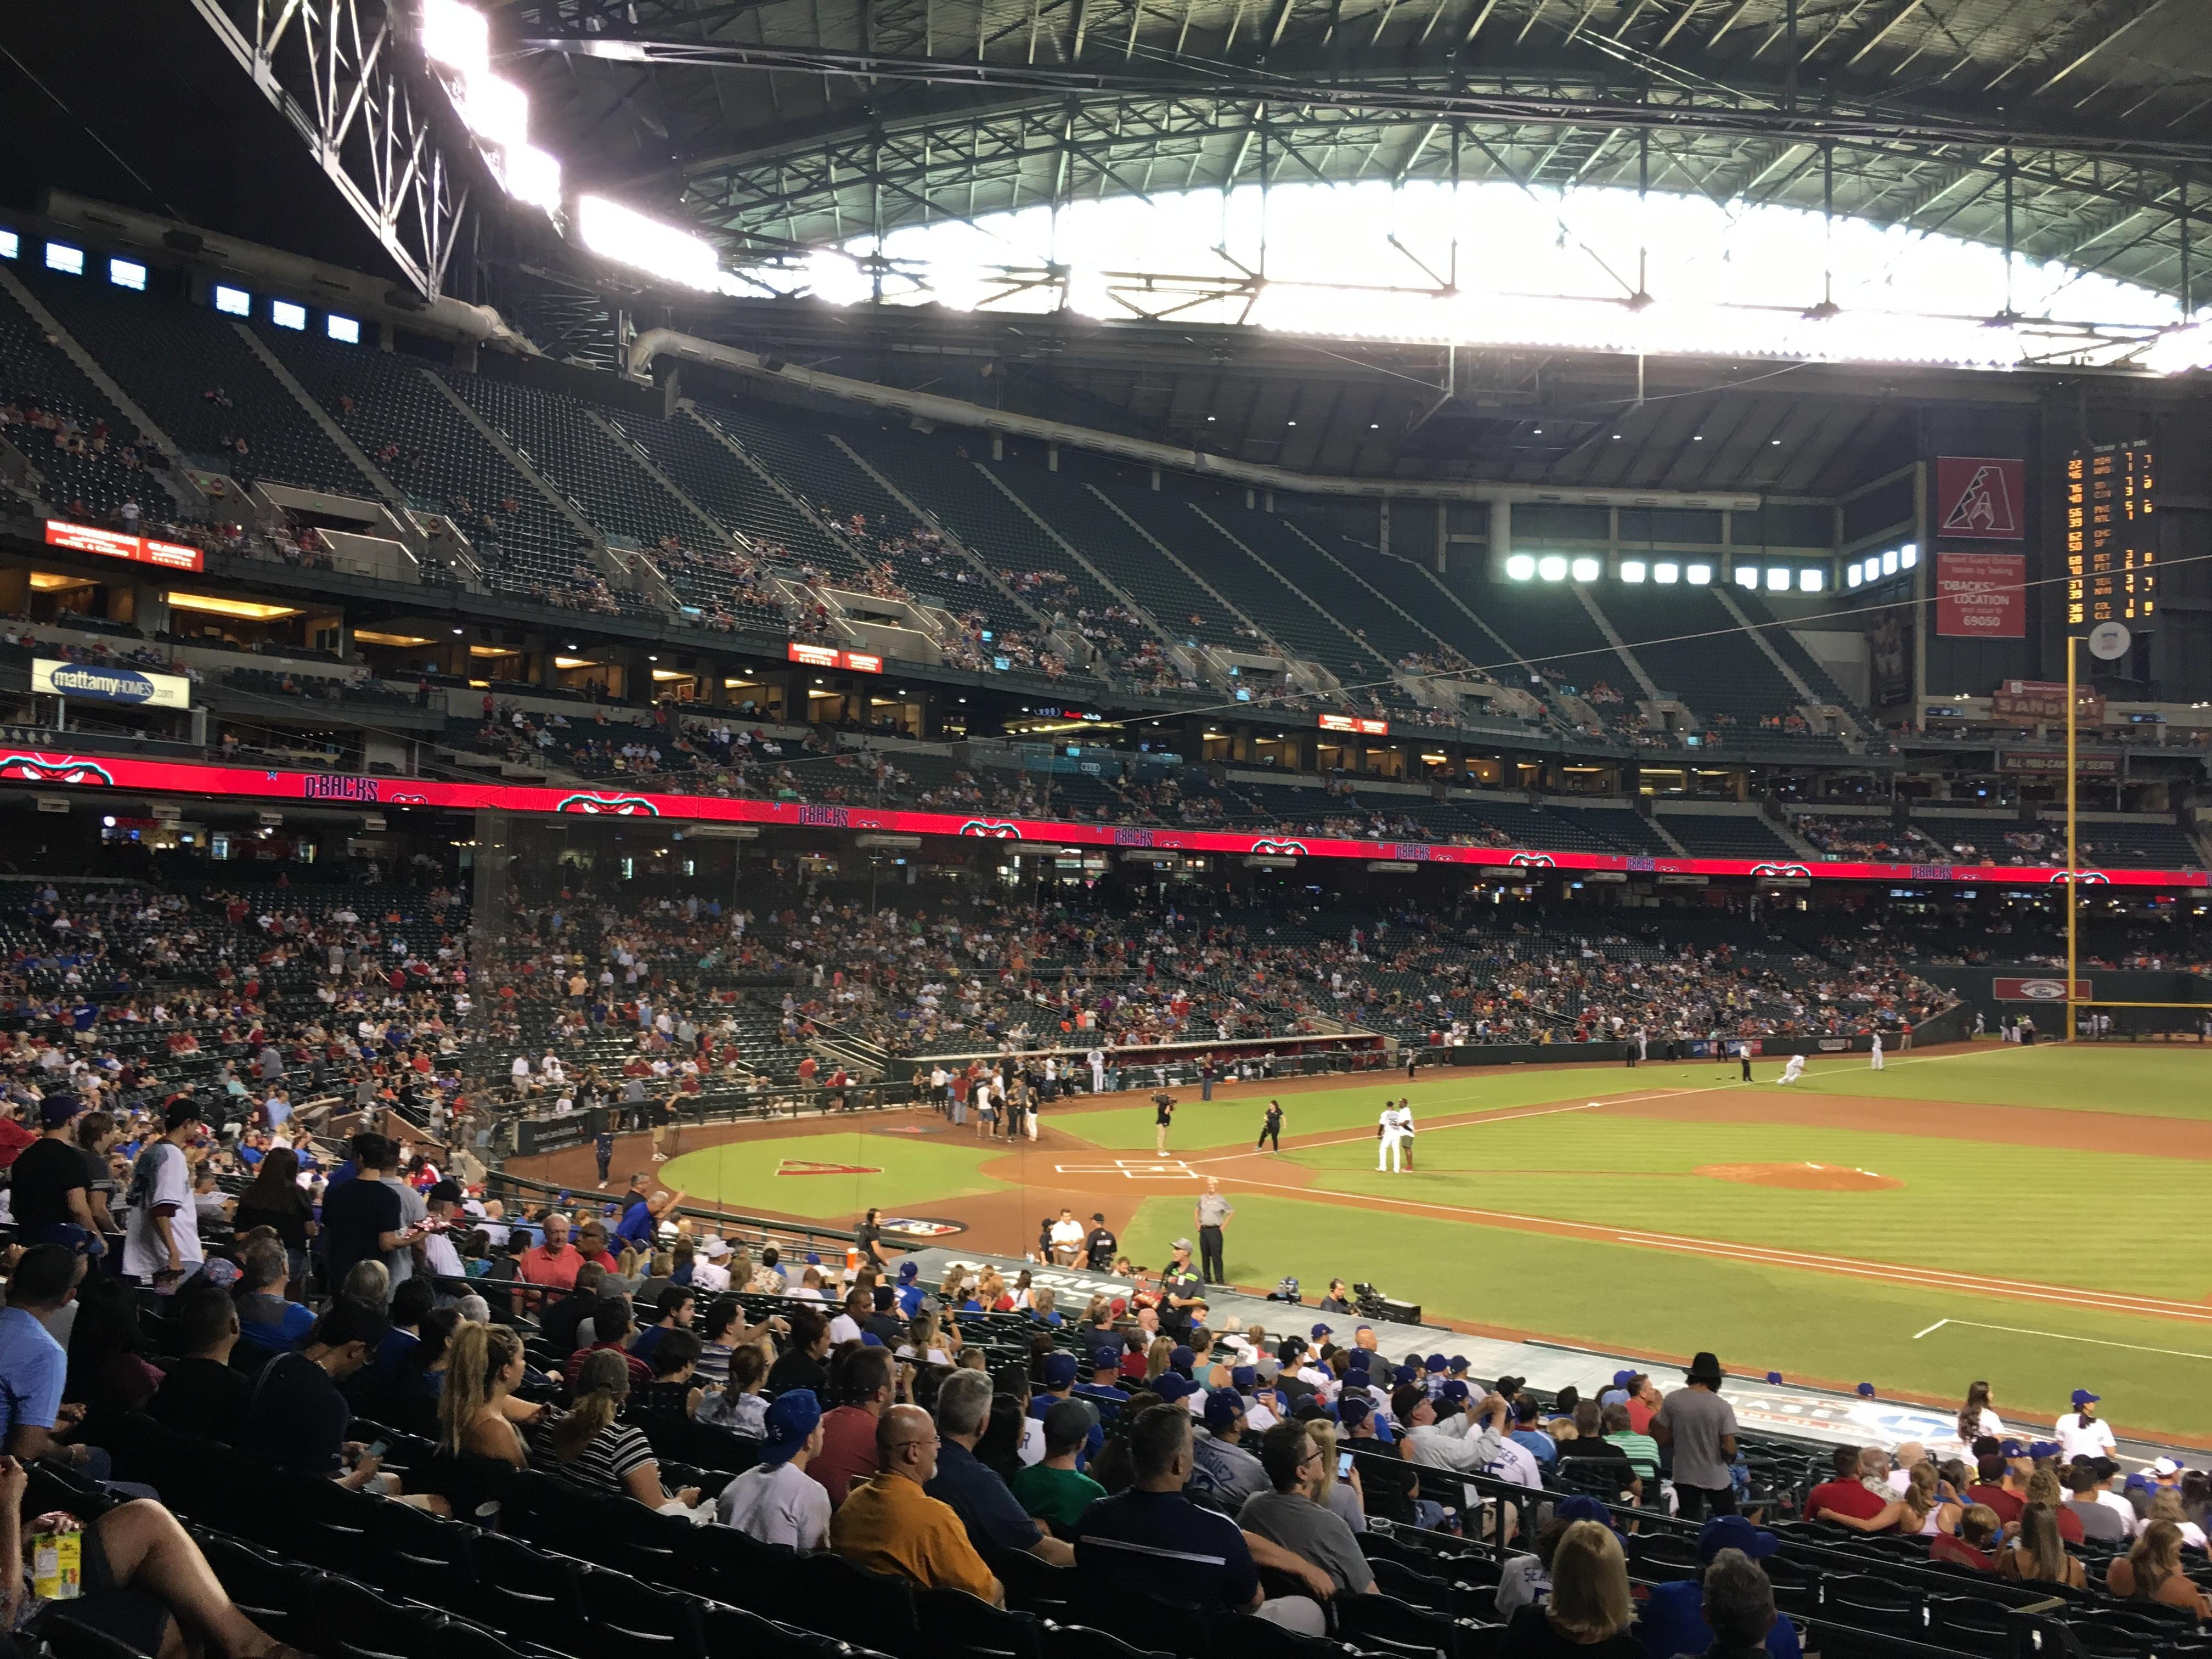 Chase Field Section 115 Row 31 Seat 20